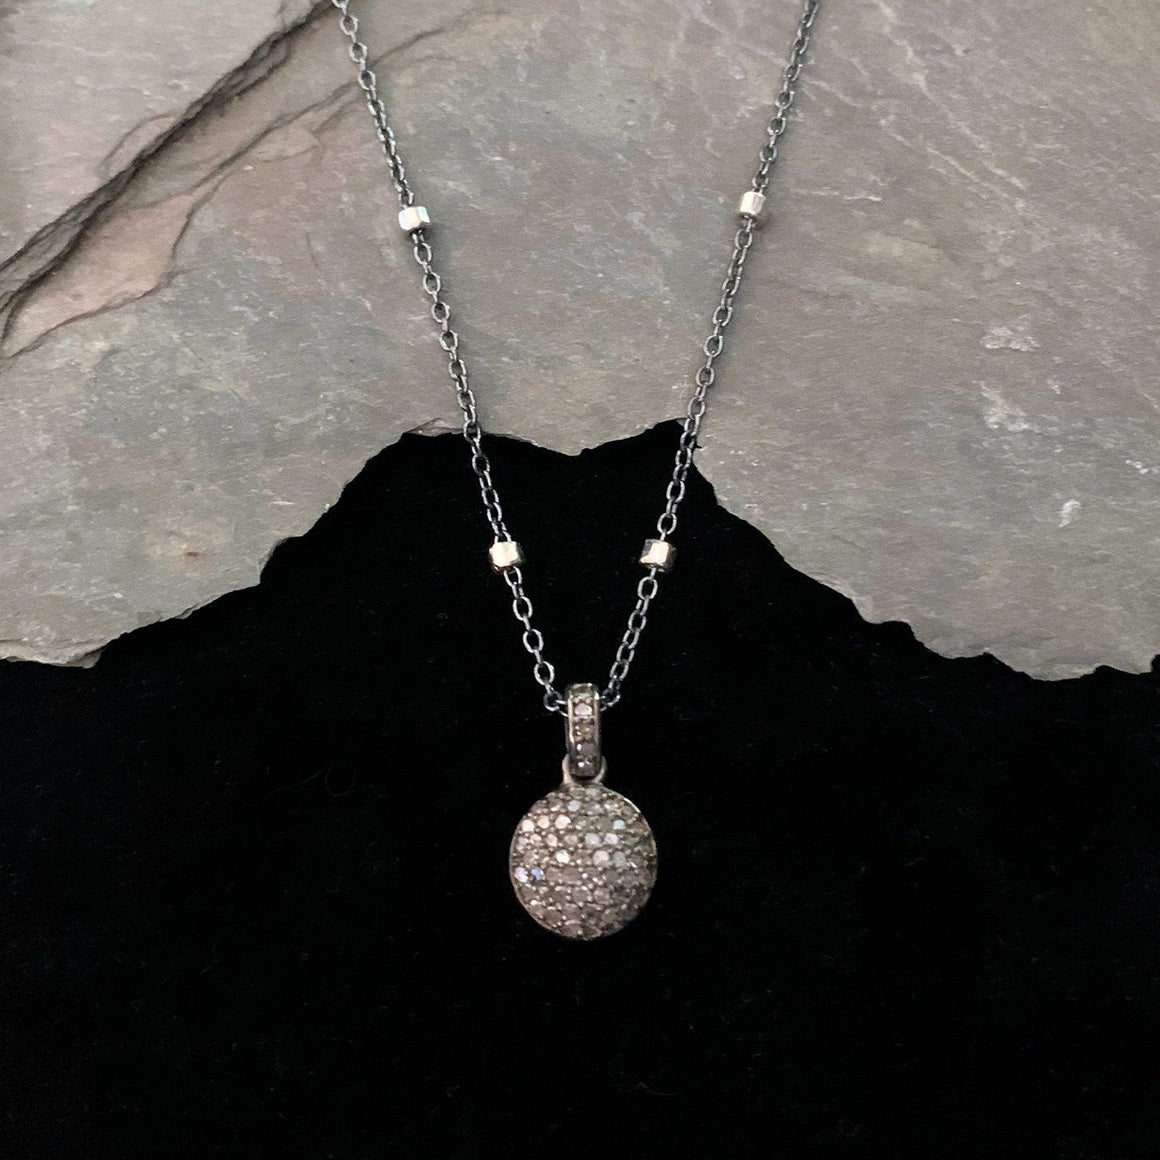 Pavé Diamond Moon Dome Charm Sterling Silver Chain Necklace - ViaLove Designs